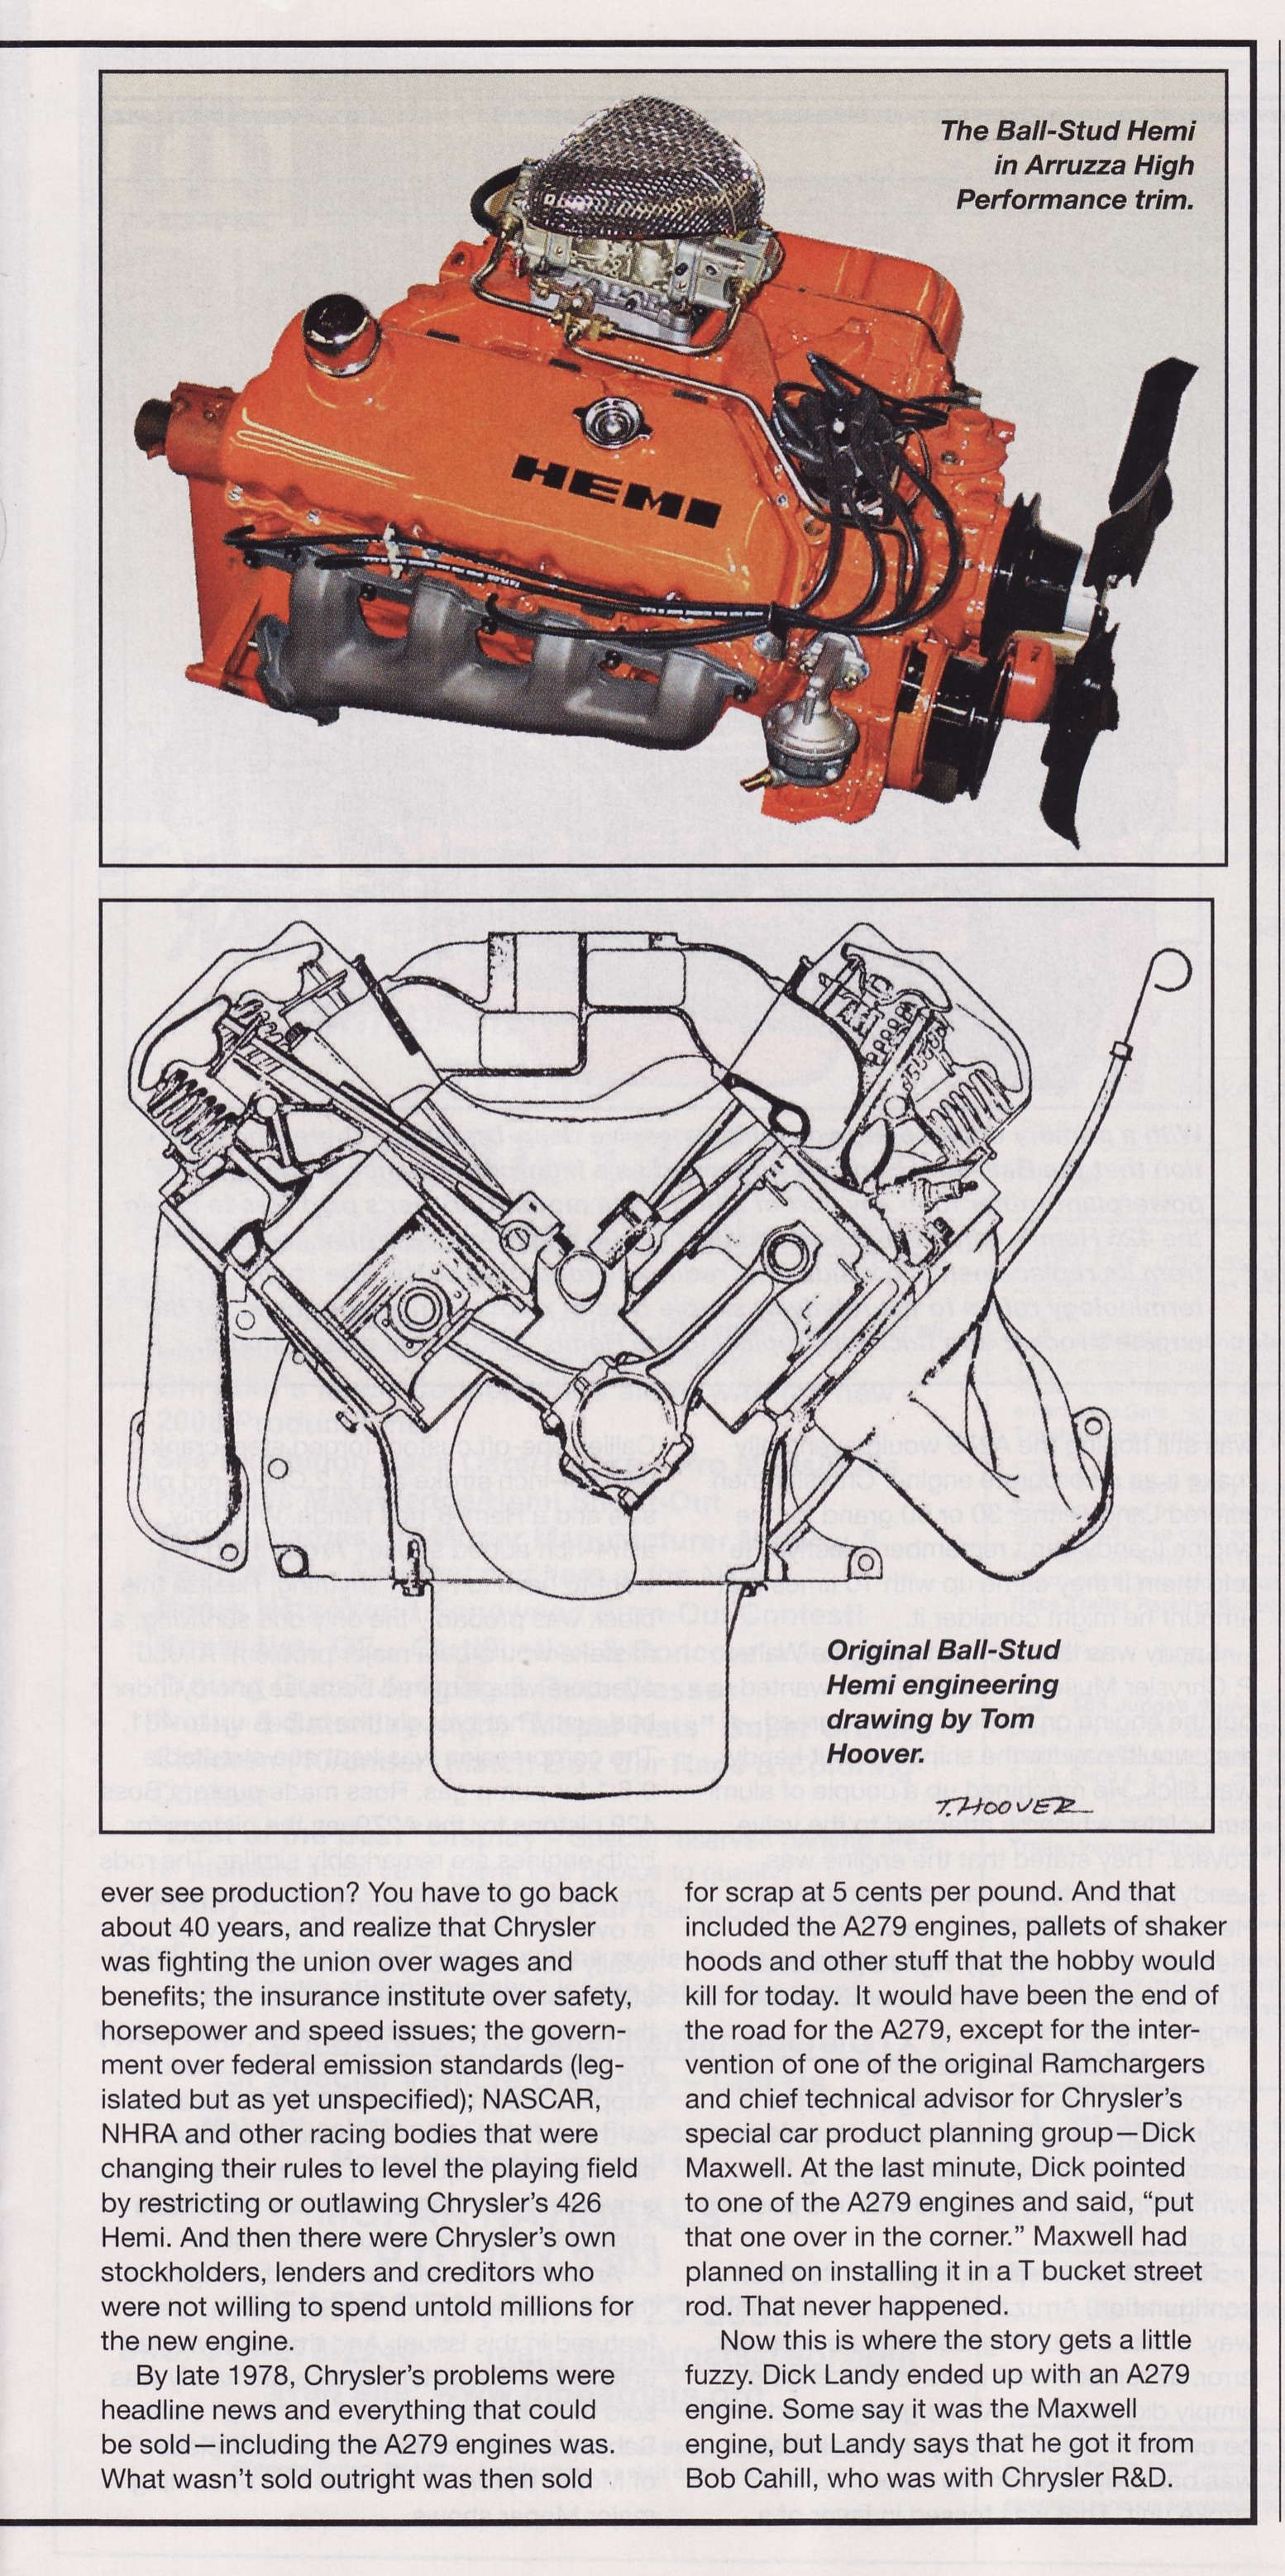 small resolution of ball stud hemi page 2 hemi engine car engine chrysler hemi truck